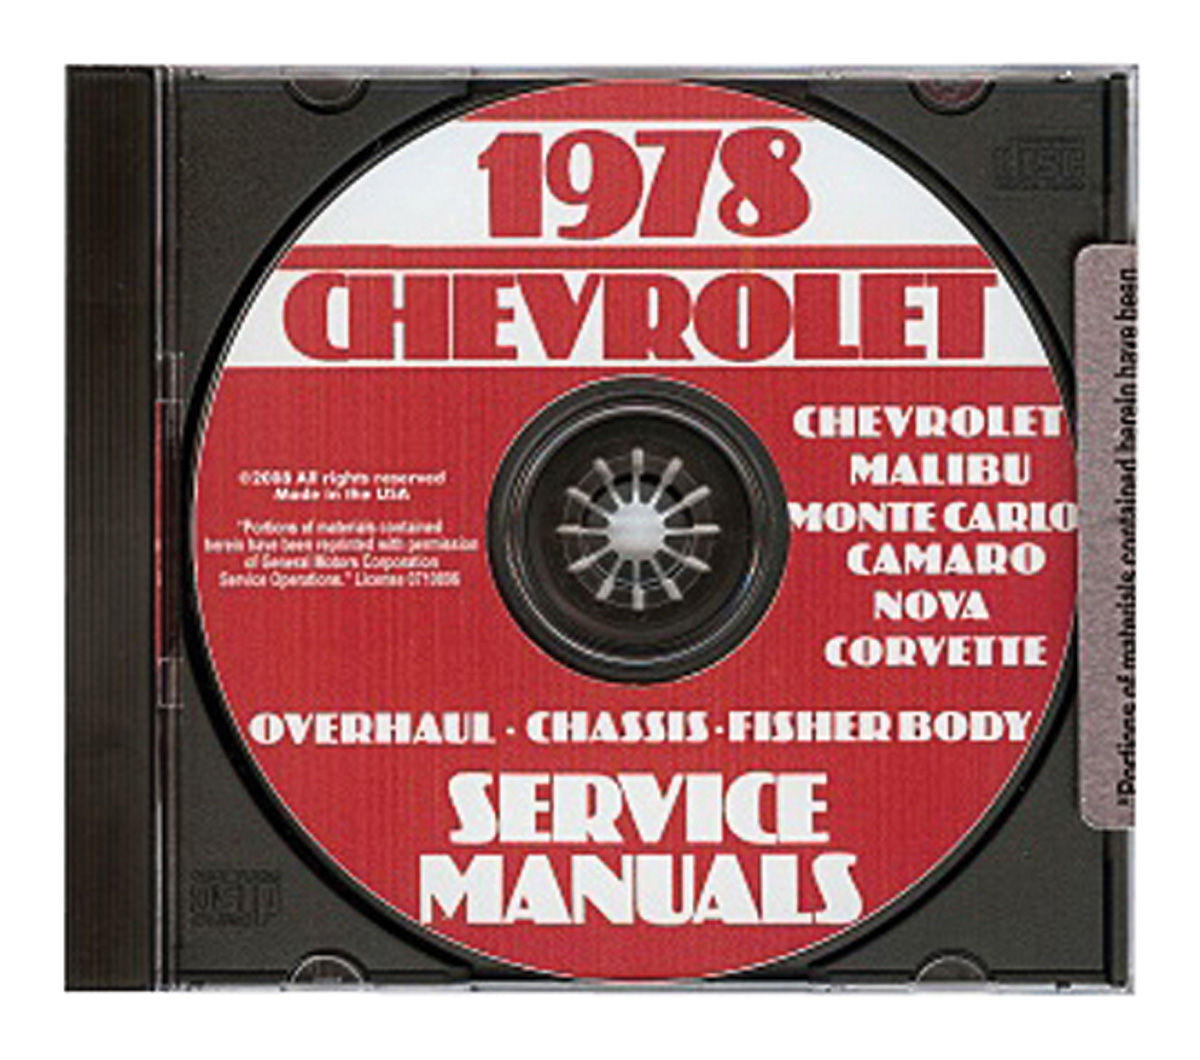 Chassis Overhaul Manual, CD-ROM, 1978 Chevrolet